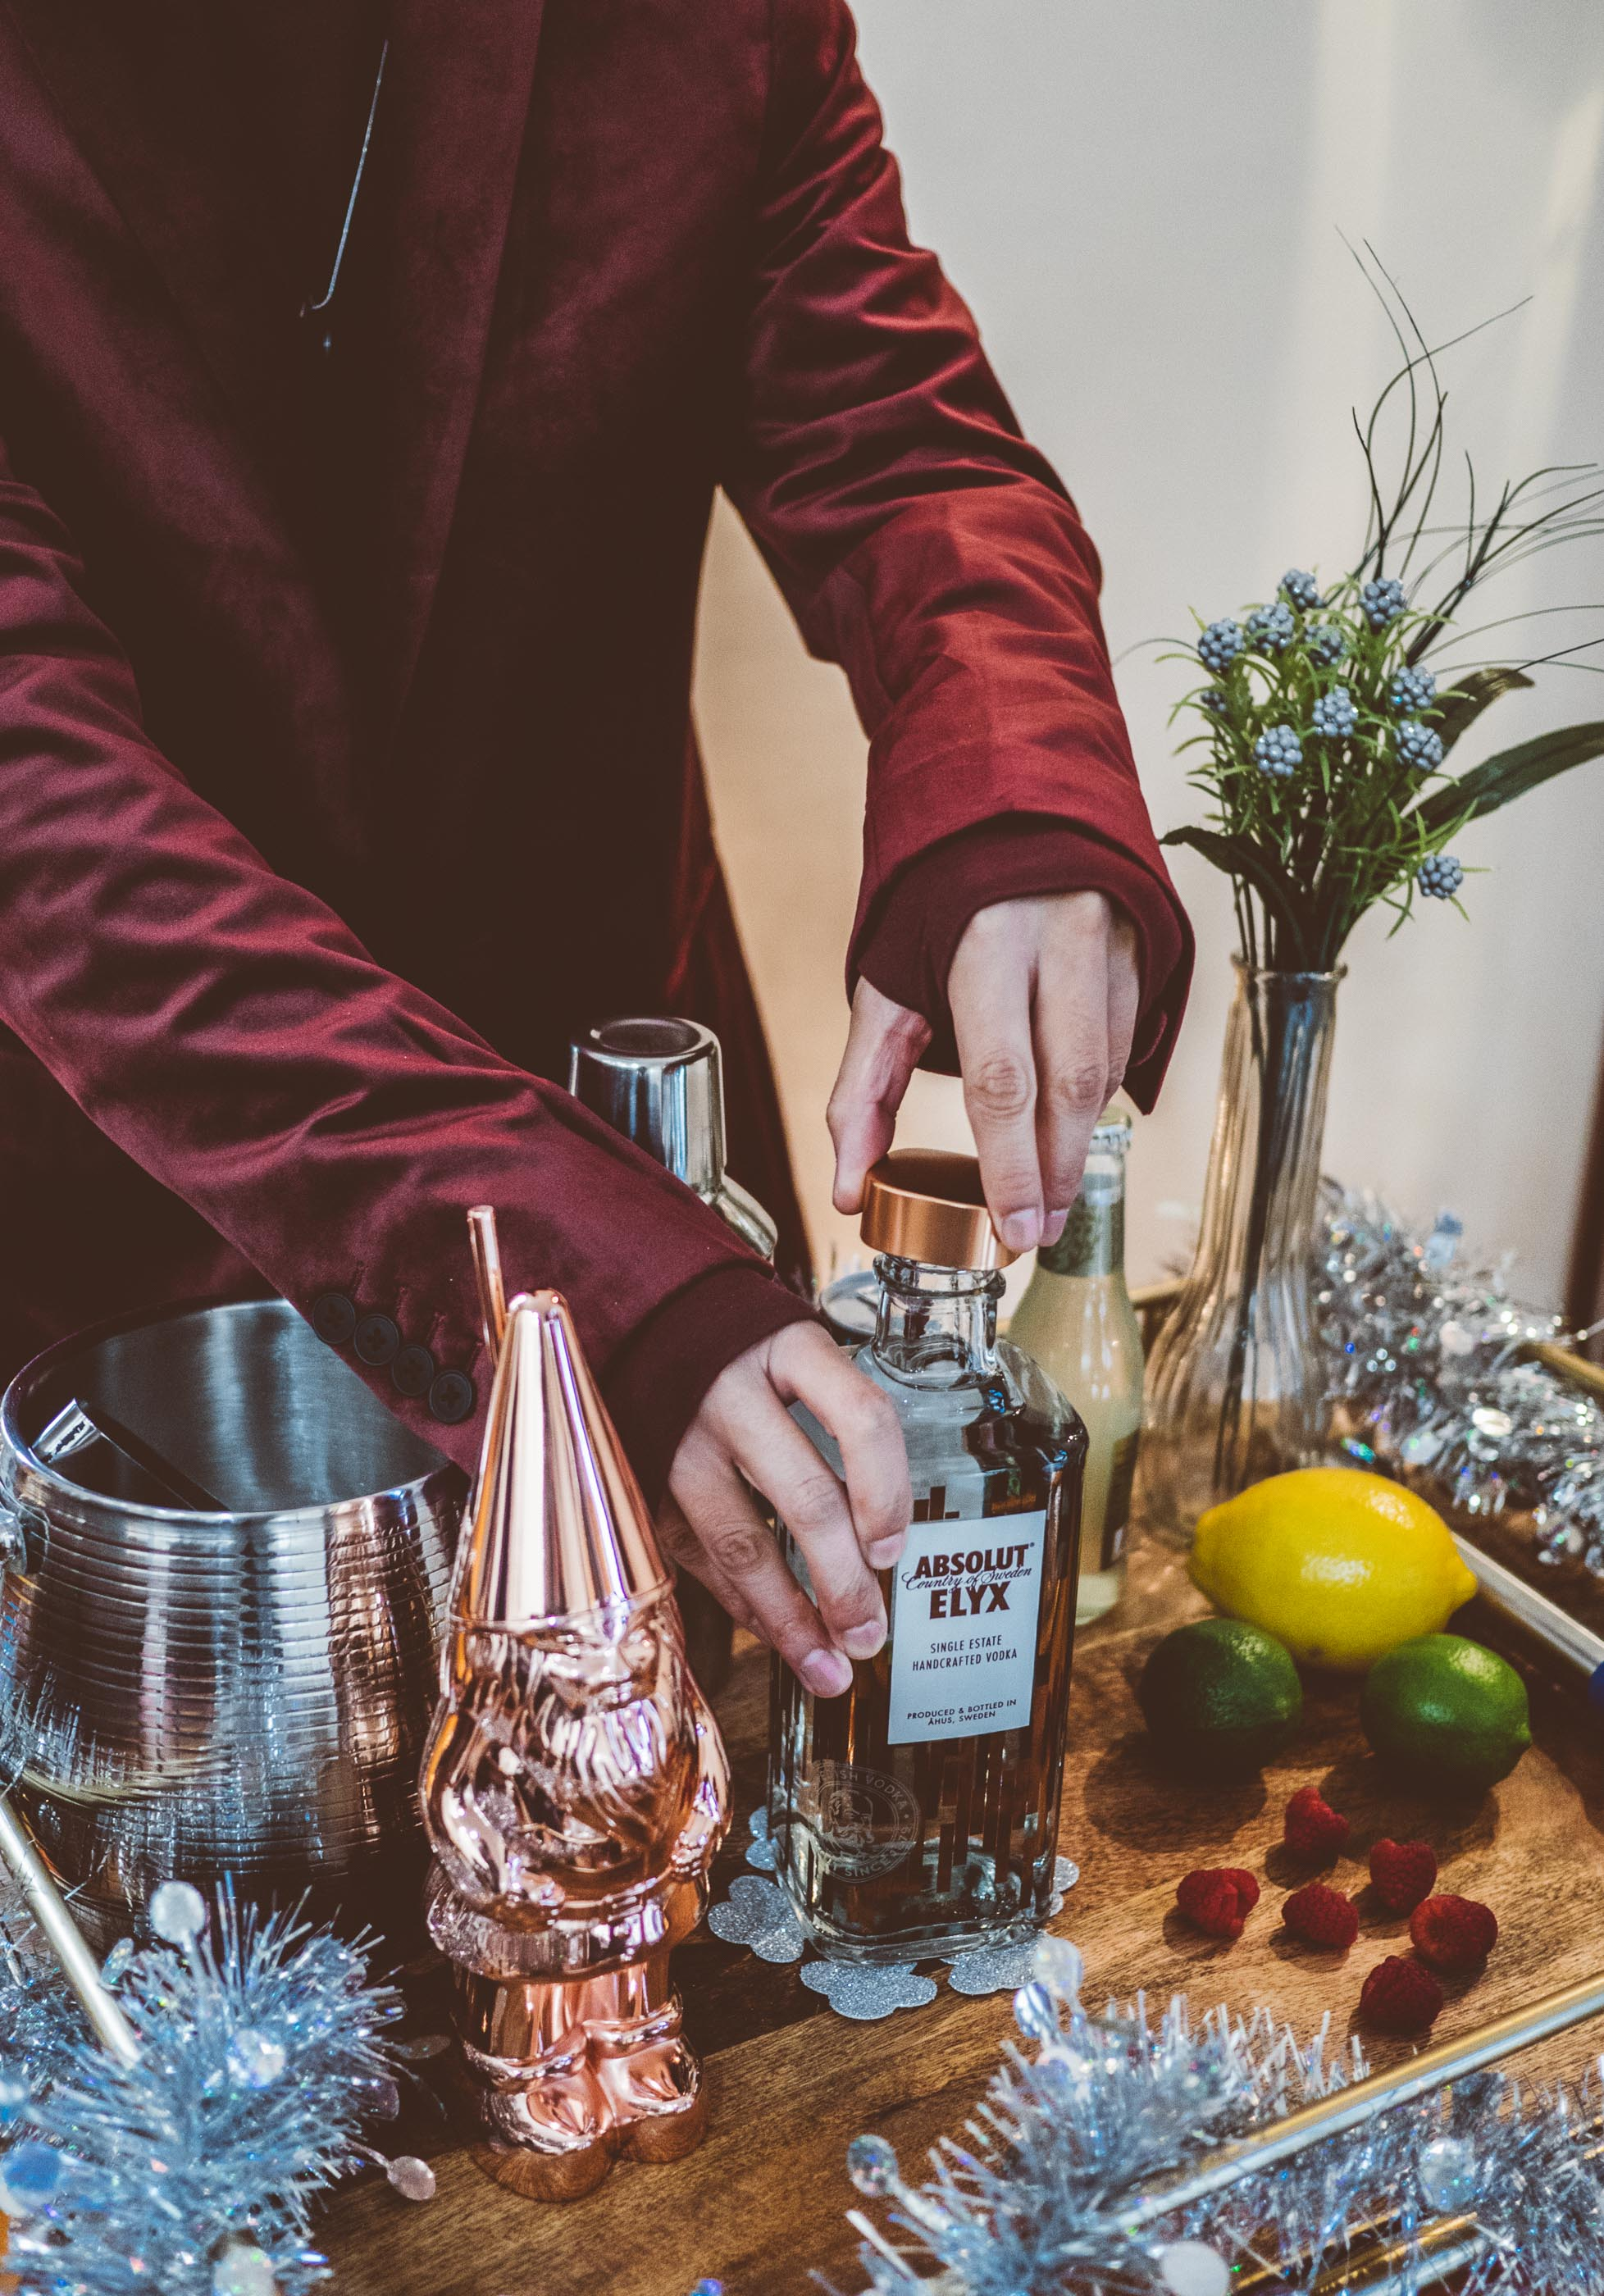 MYBELONGING-TOMMYLEI-THE-BEST-ABSOLUT-ELYX-COCKTAIL-BAR-CART-HOLIDAY-DRINK-RECIPES-23.jpg